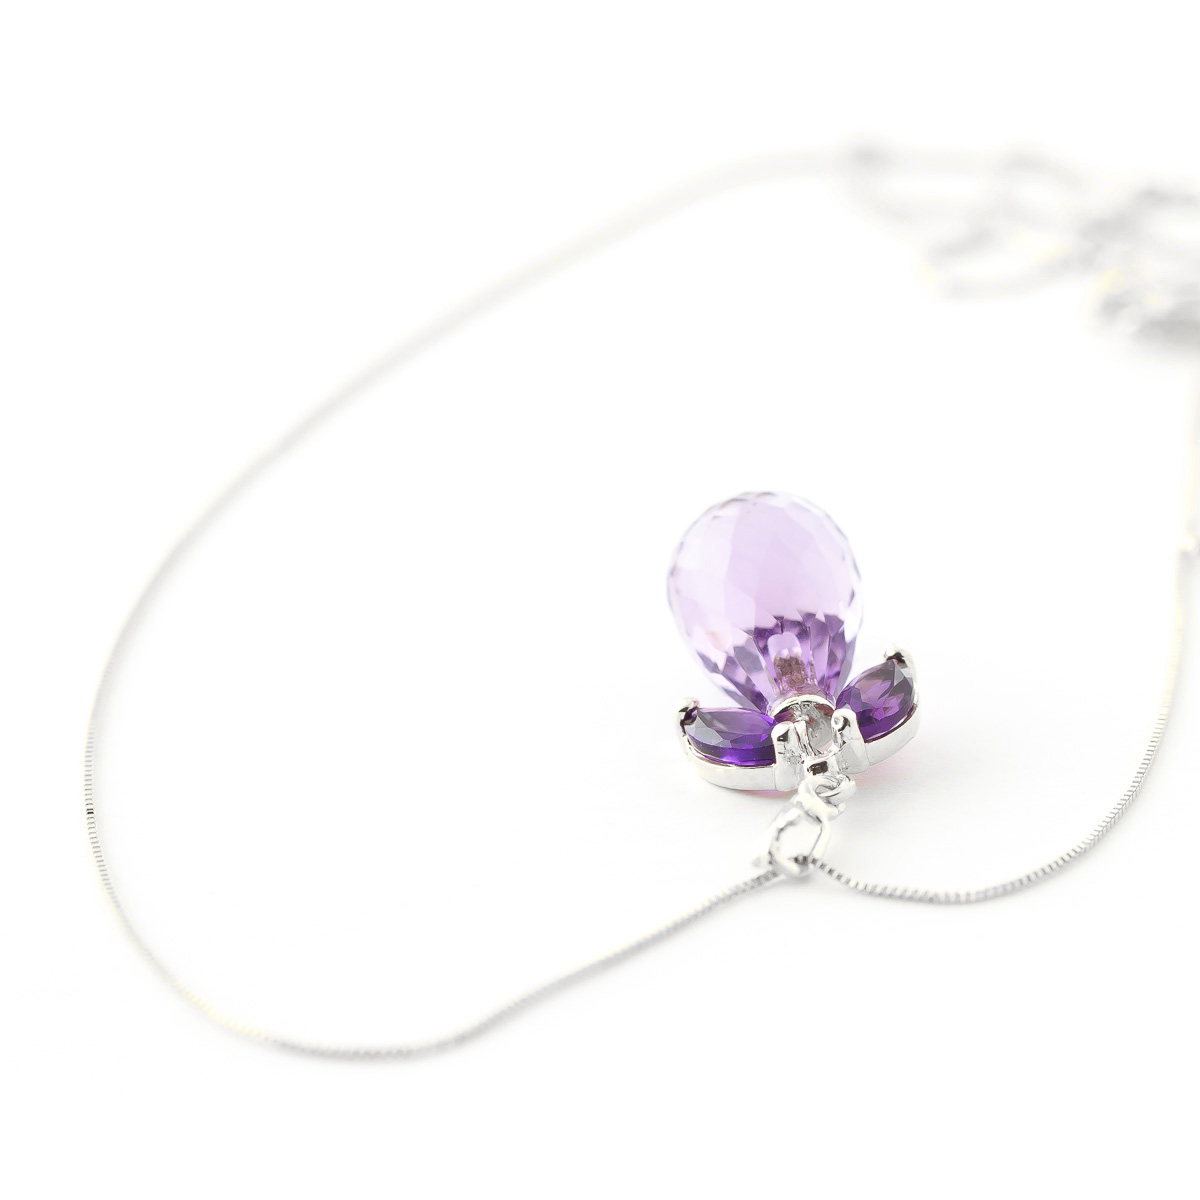 Amethyst Briolette Pendant Necklace 7.2ctw in 9ct White Gold